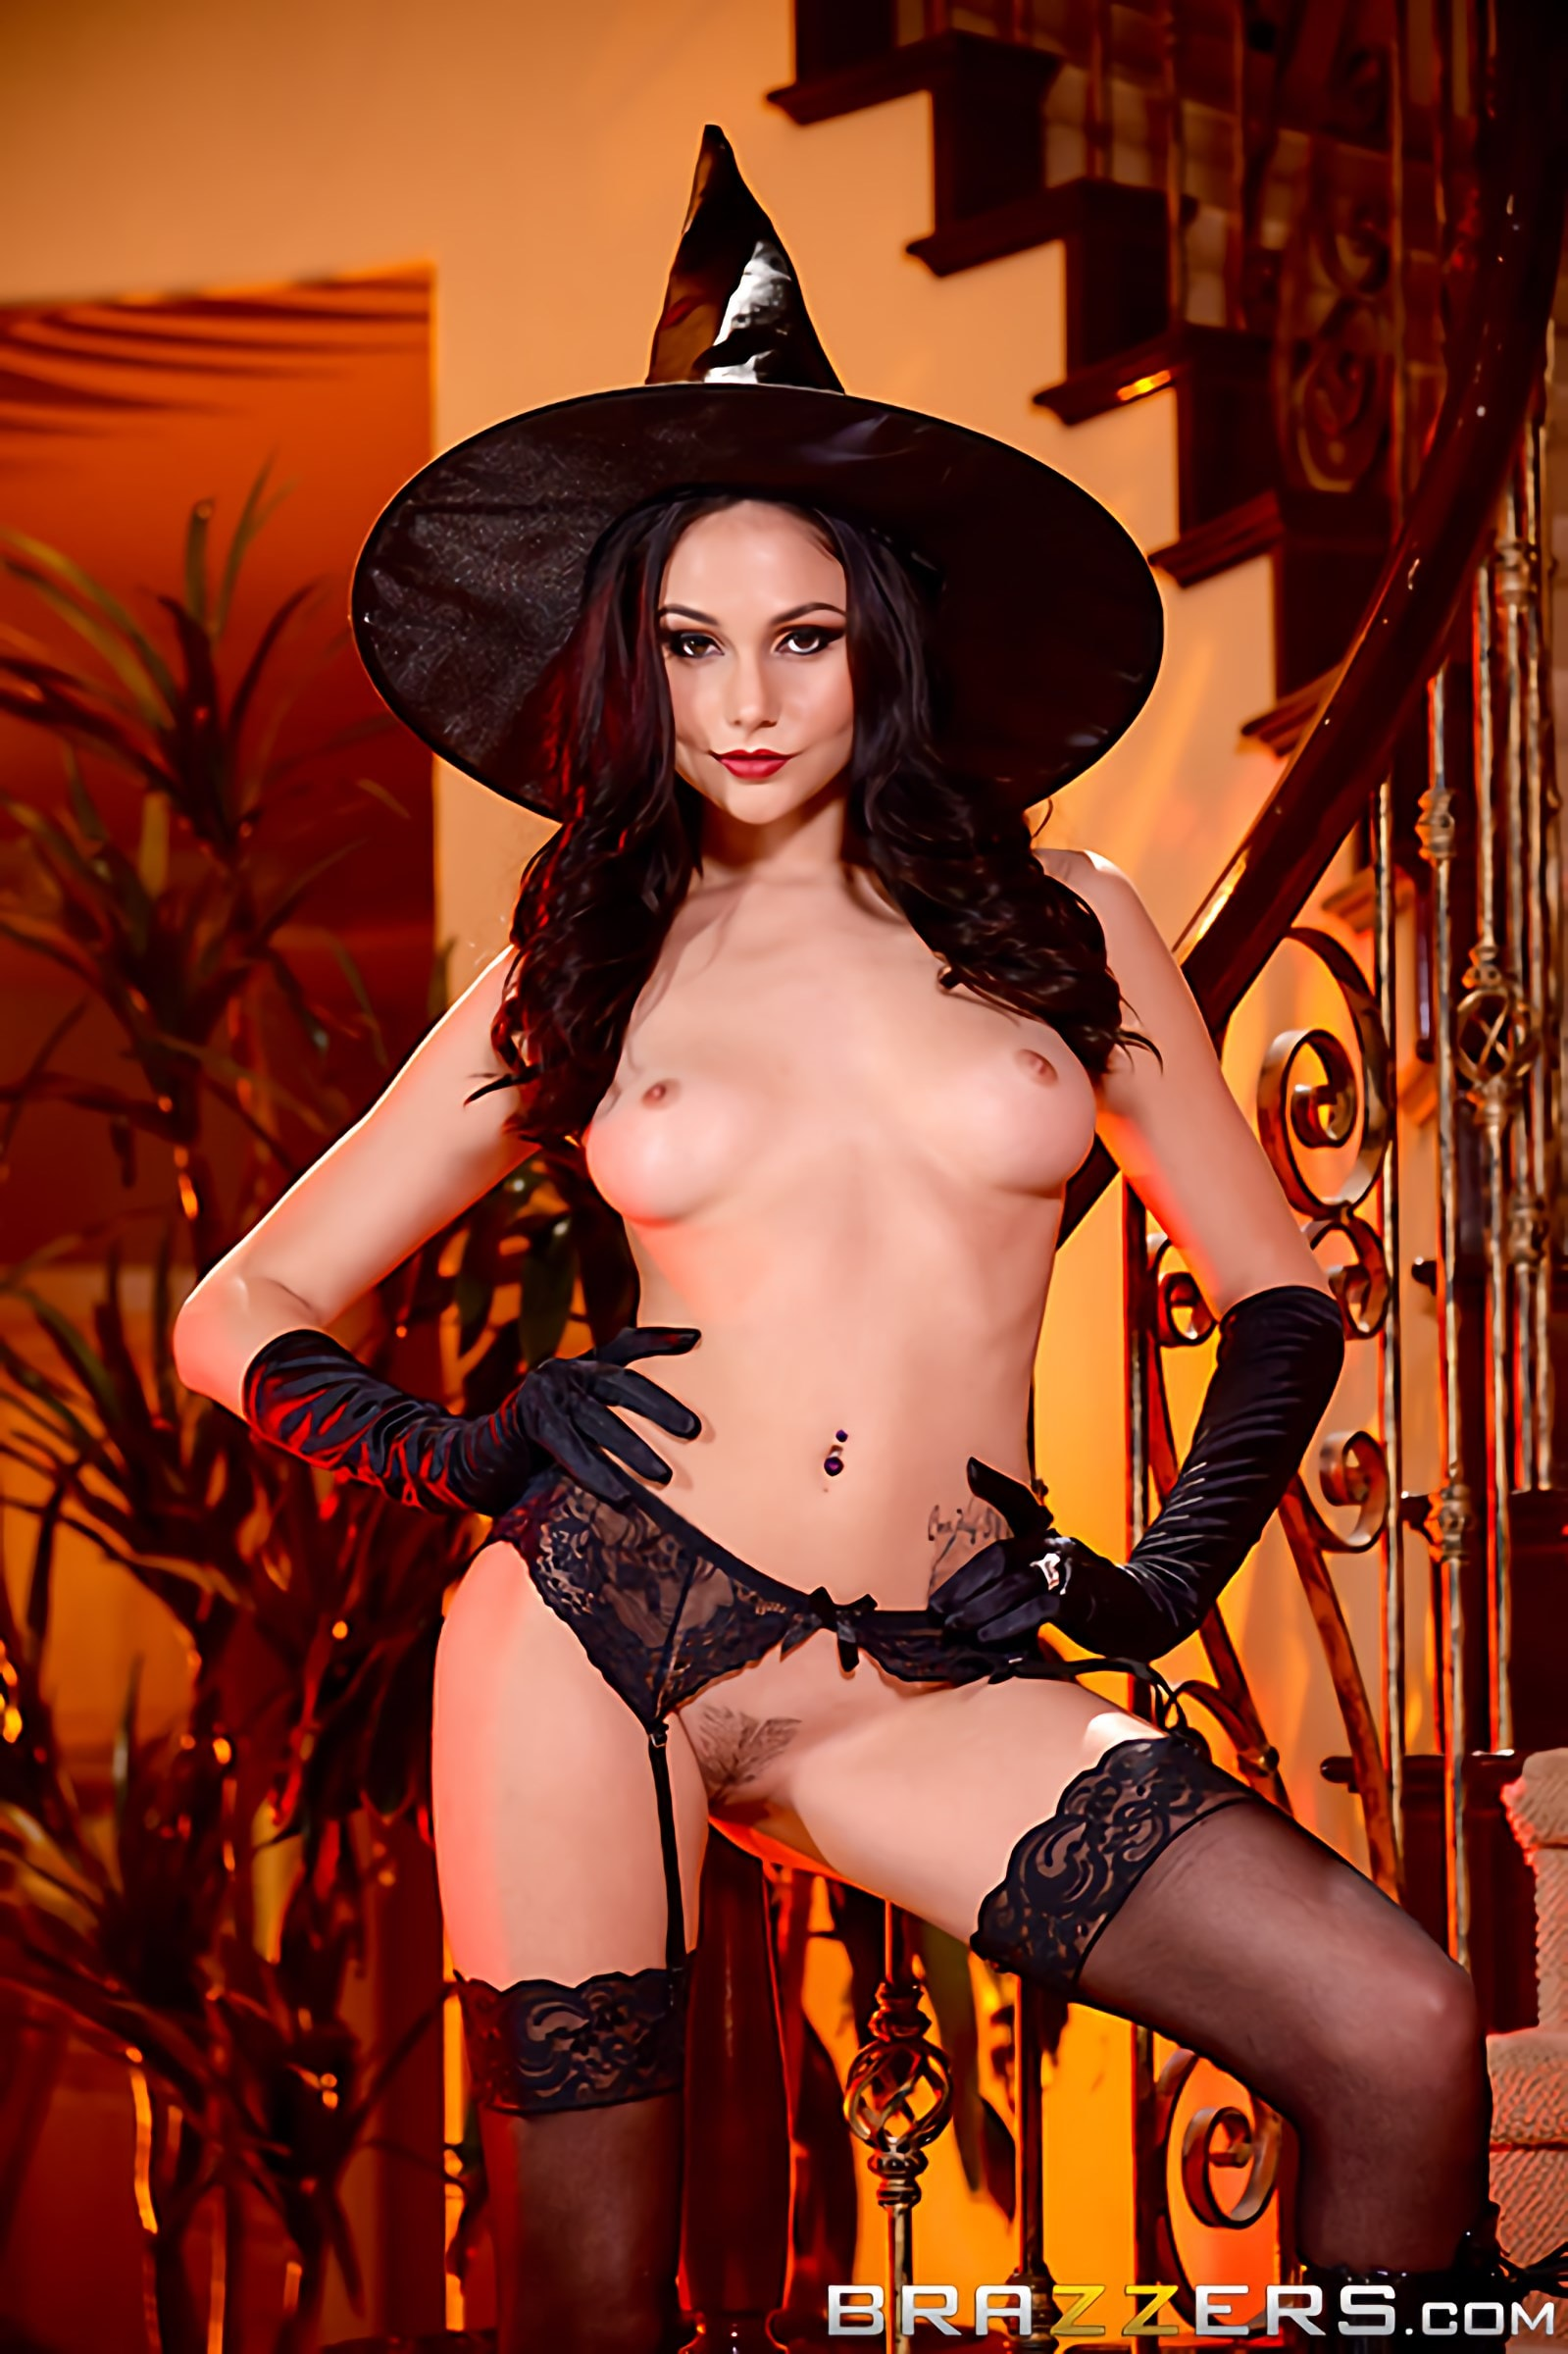 Brazzers 'Dick Or Treat' starring Ariana Marie (Photo 10)